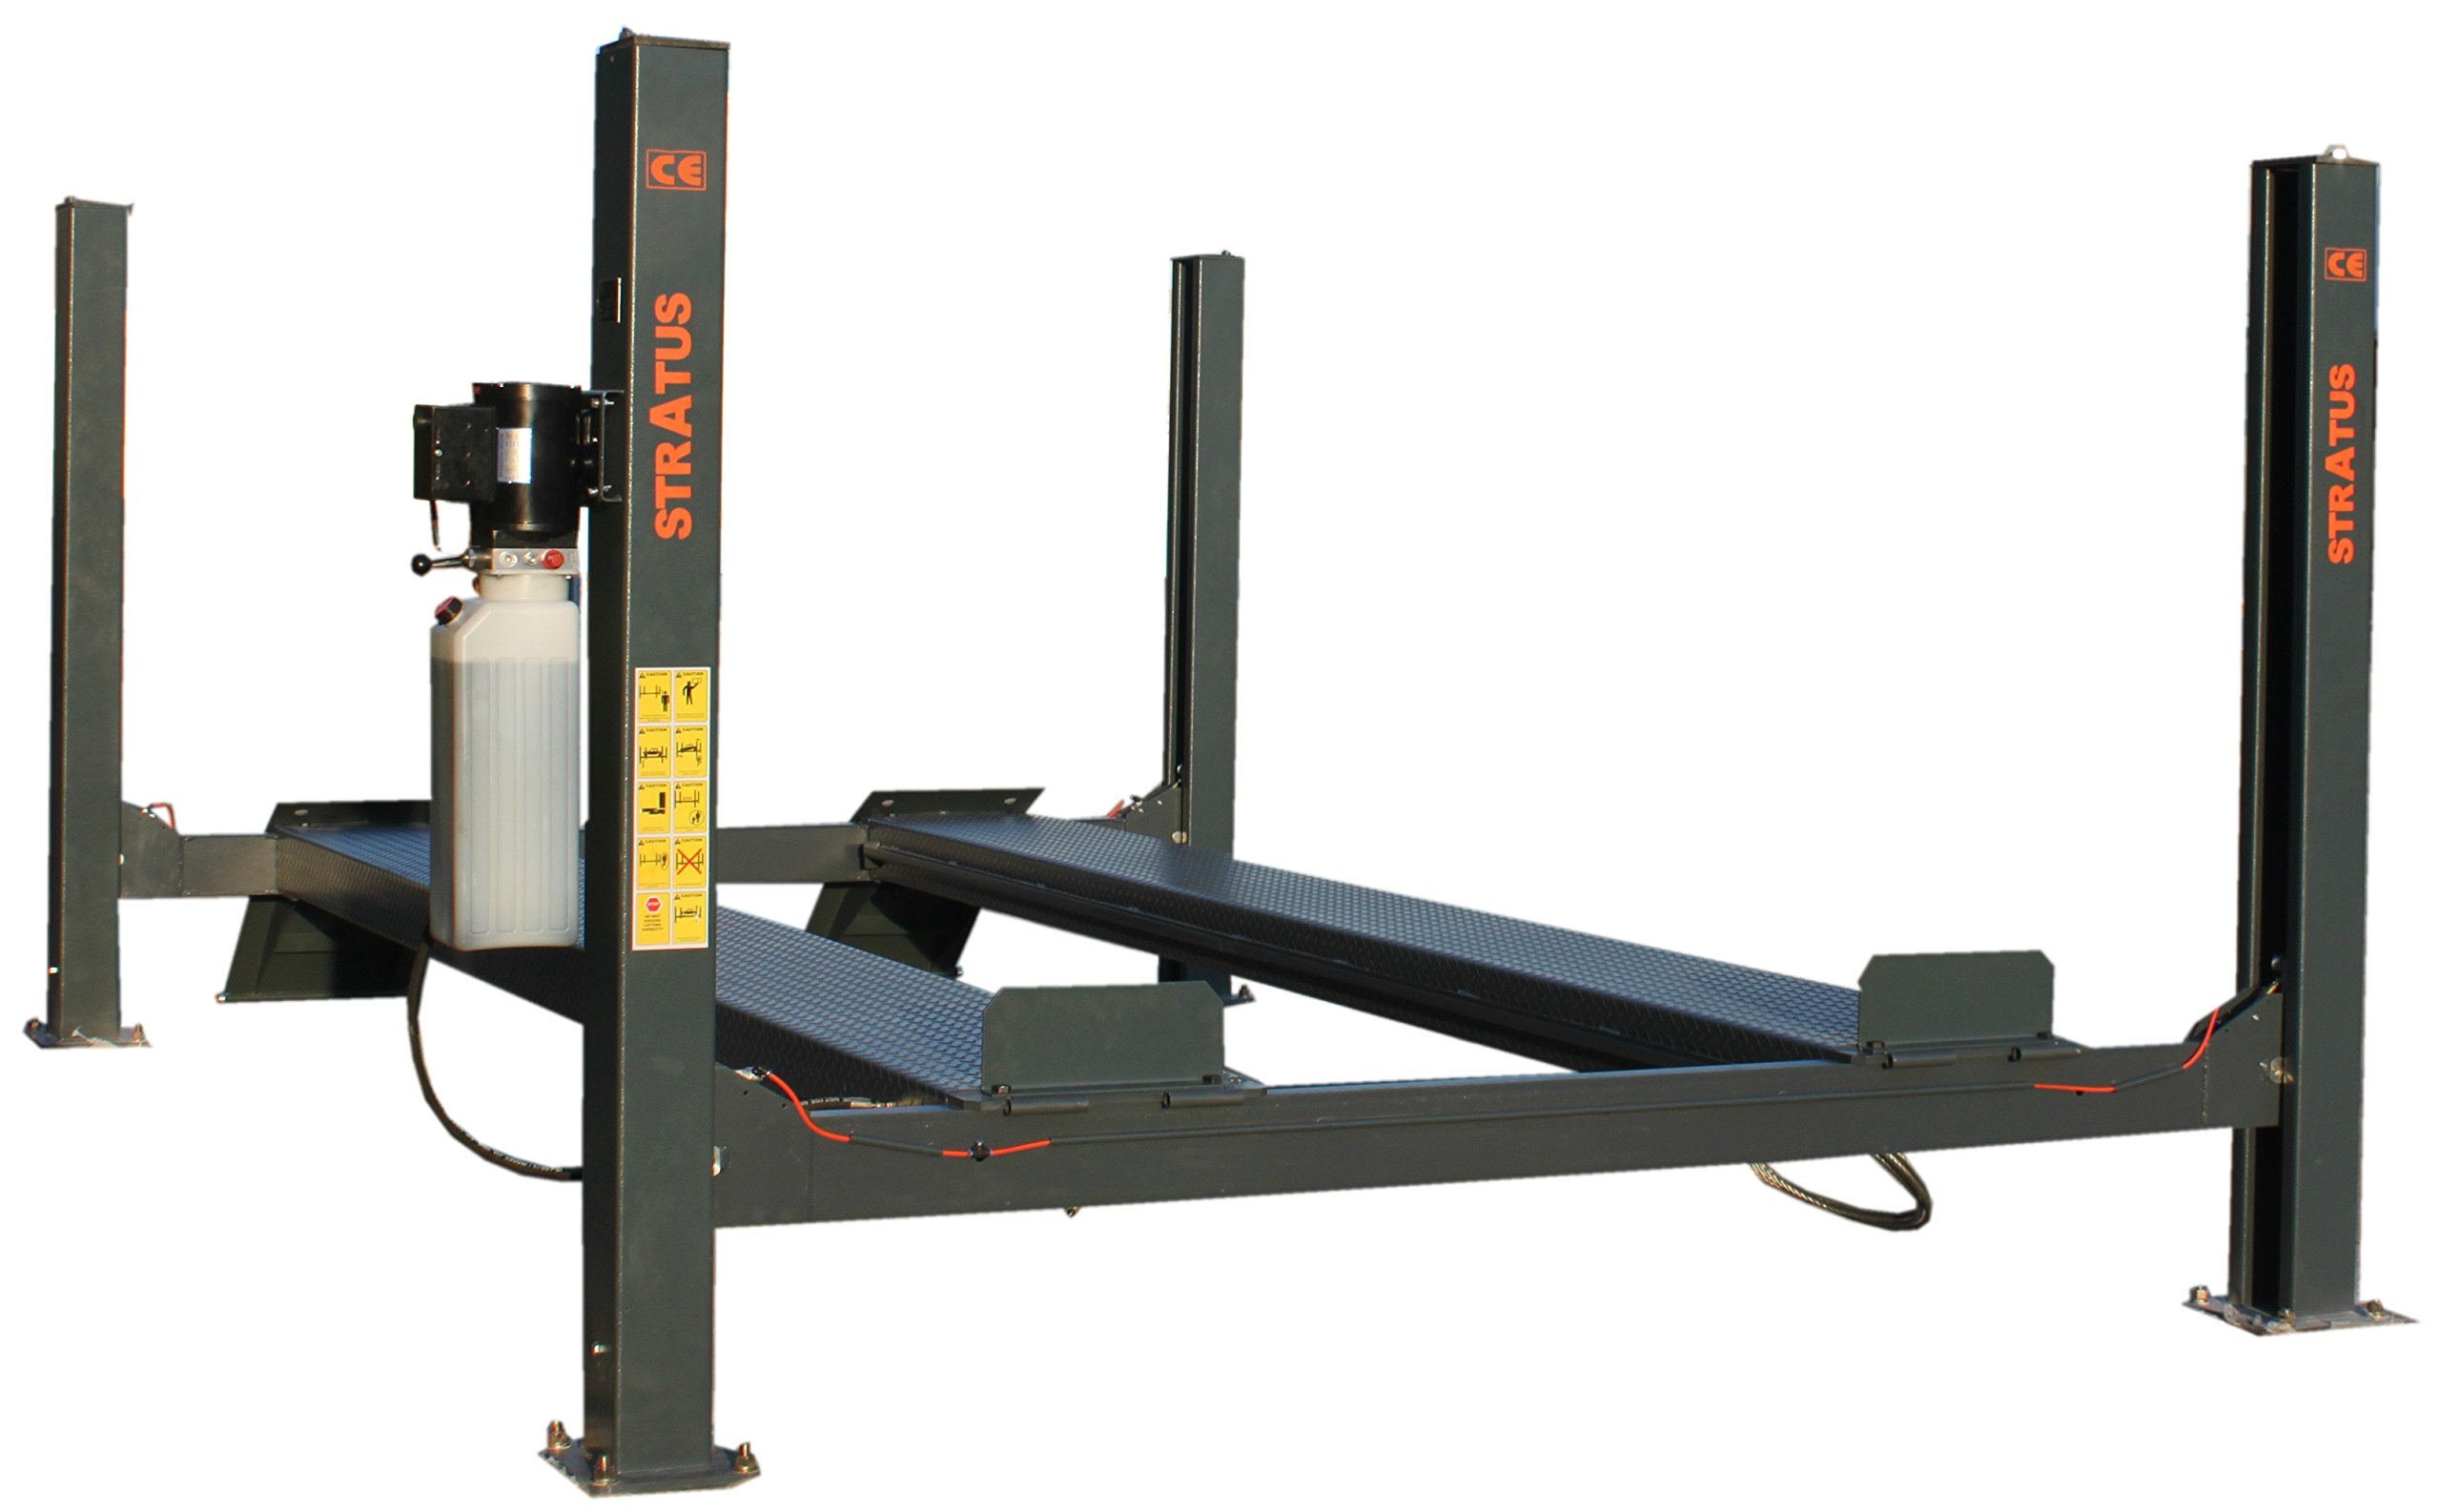 Stratus 4 Post 12,000 lbs Service Car Lift by STRATUS (Image #1)